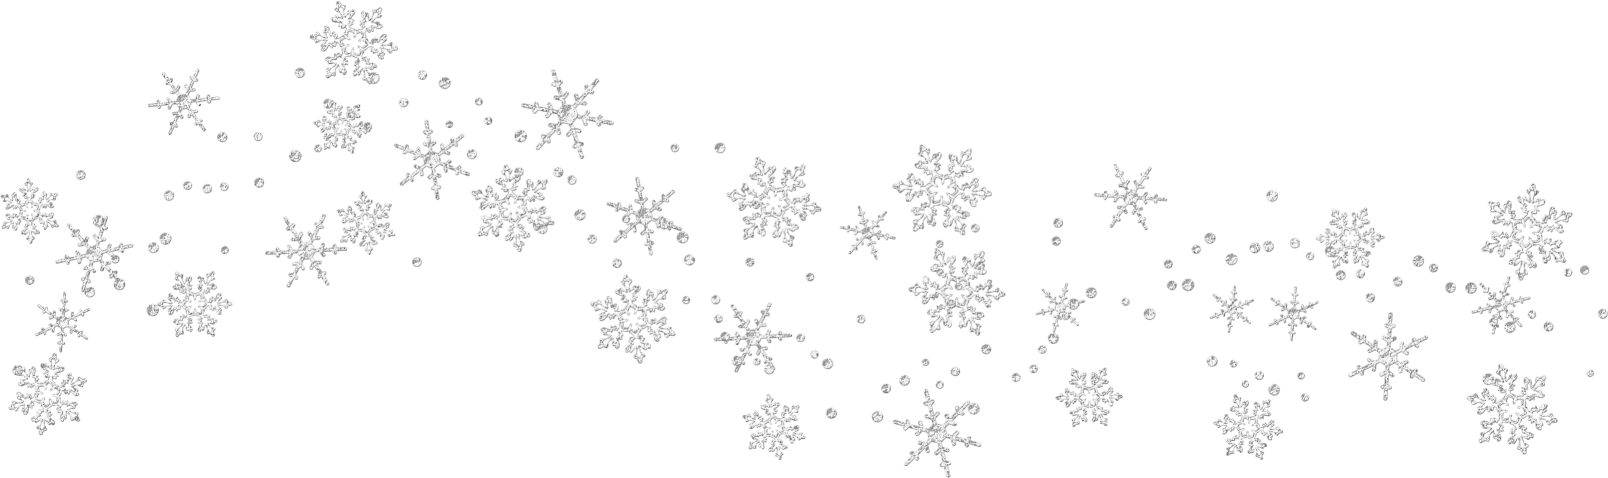 Mini snowflake clipart banner stock Falling Snowflake Clipart – Fun for Christmas banner stock